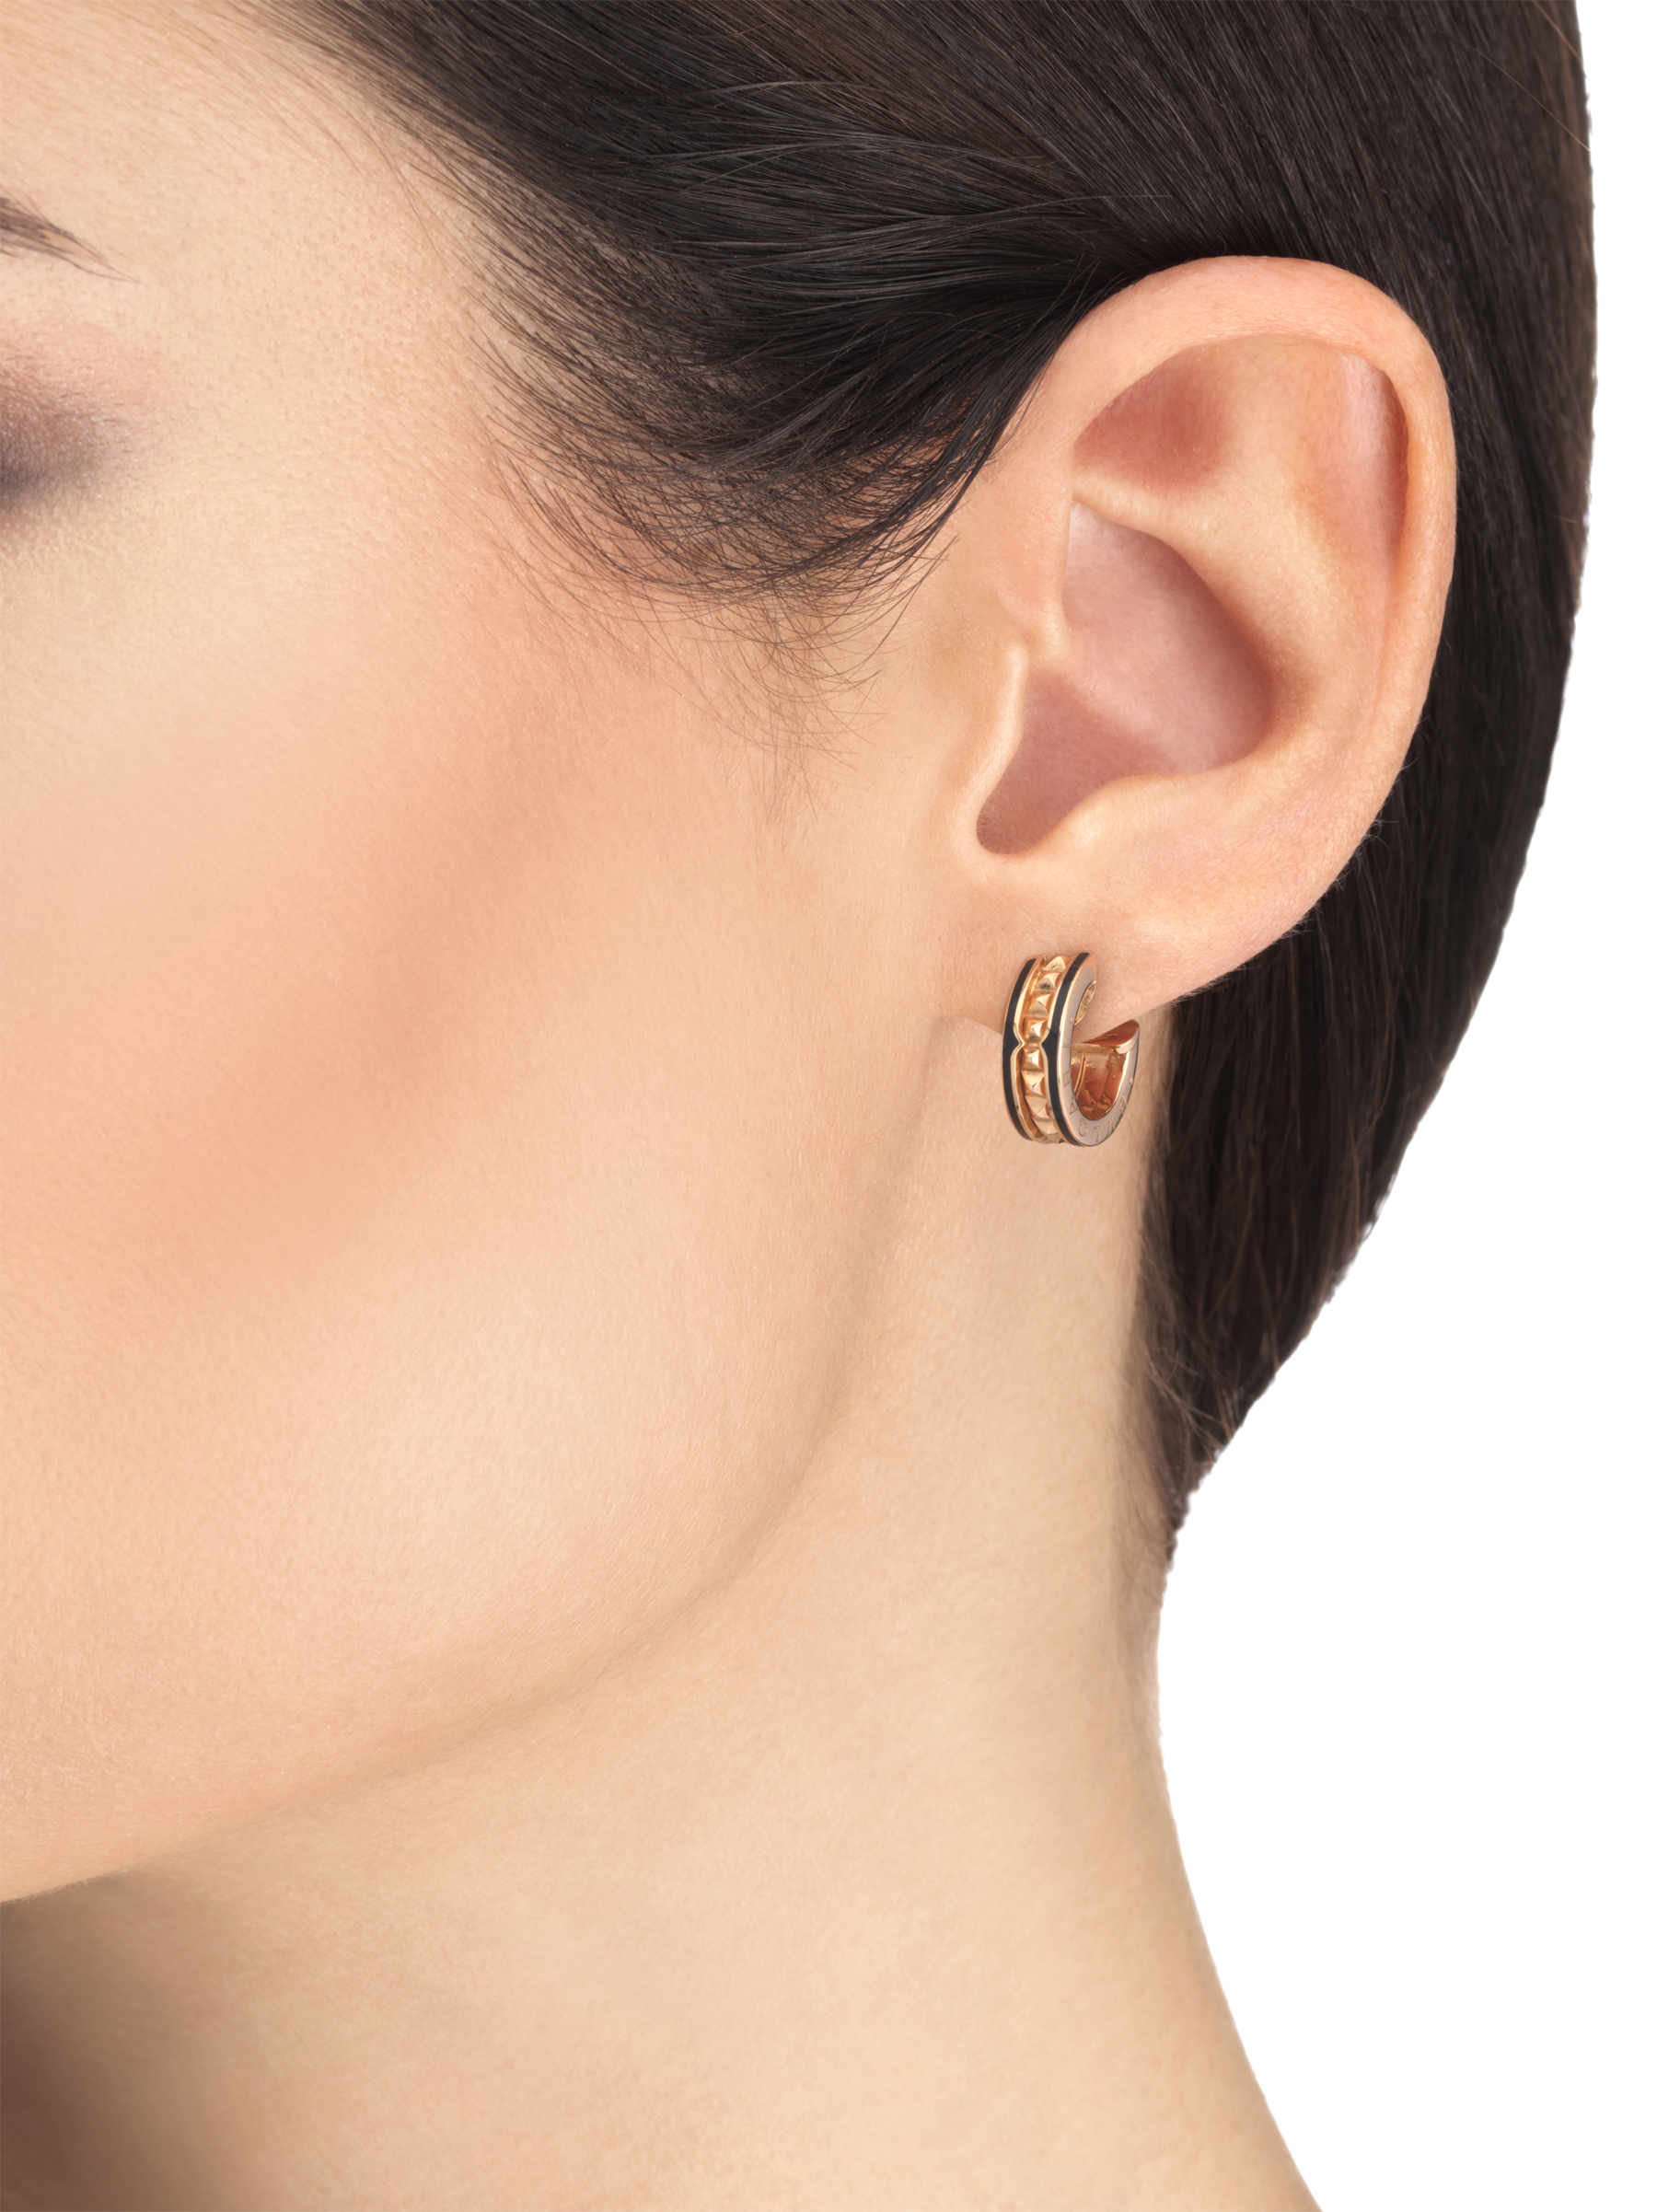 B.zero1 Rock 18 kt rose gold earrings with studded spiral and black ceramic inserts on the edges 357567 image 3